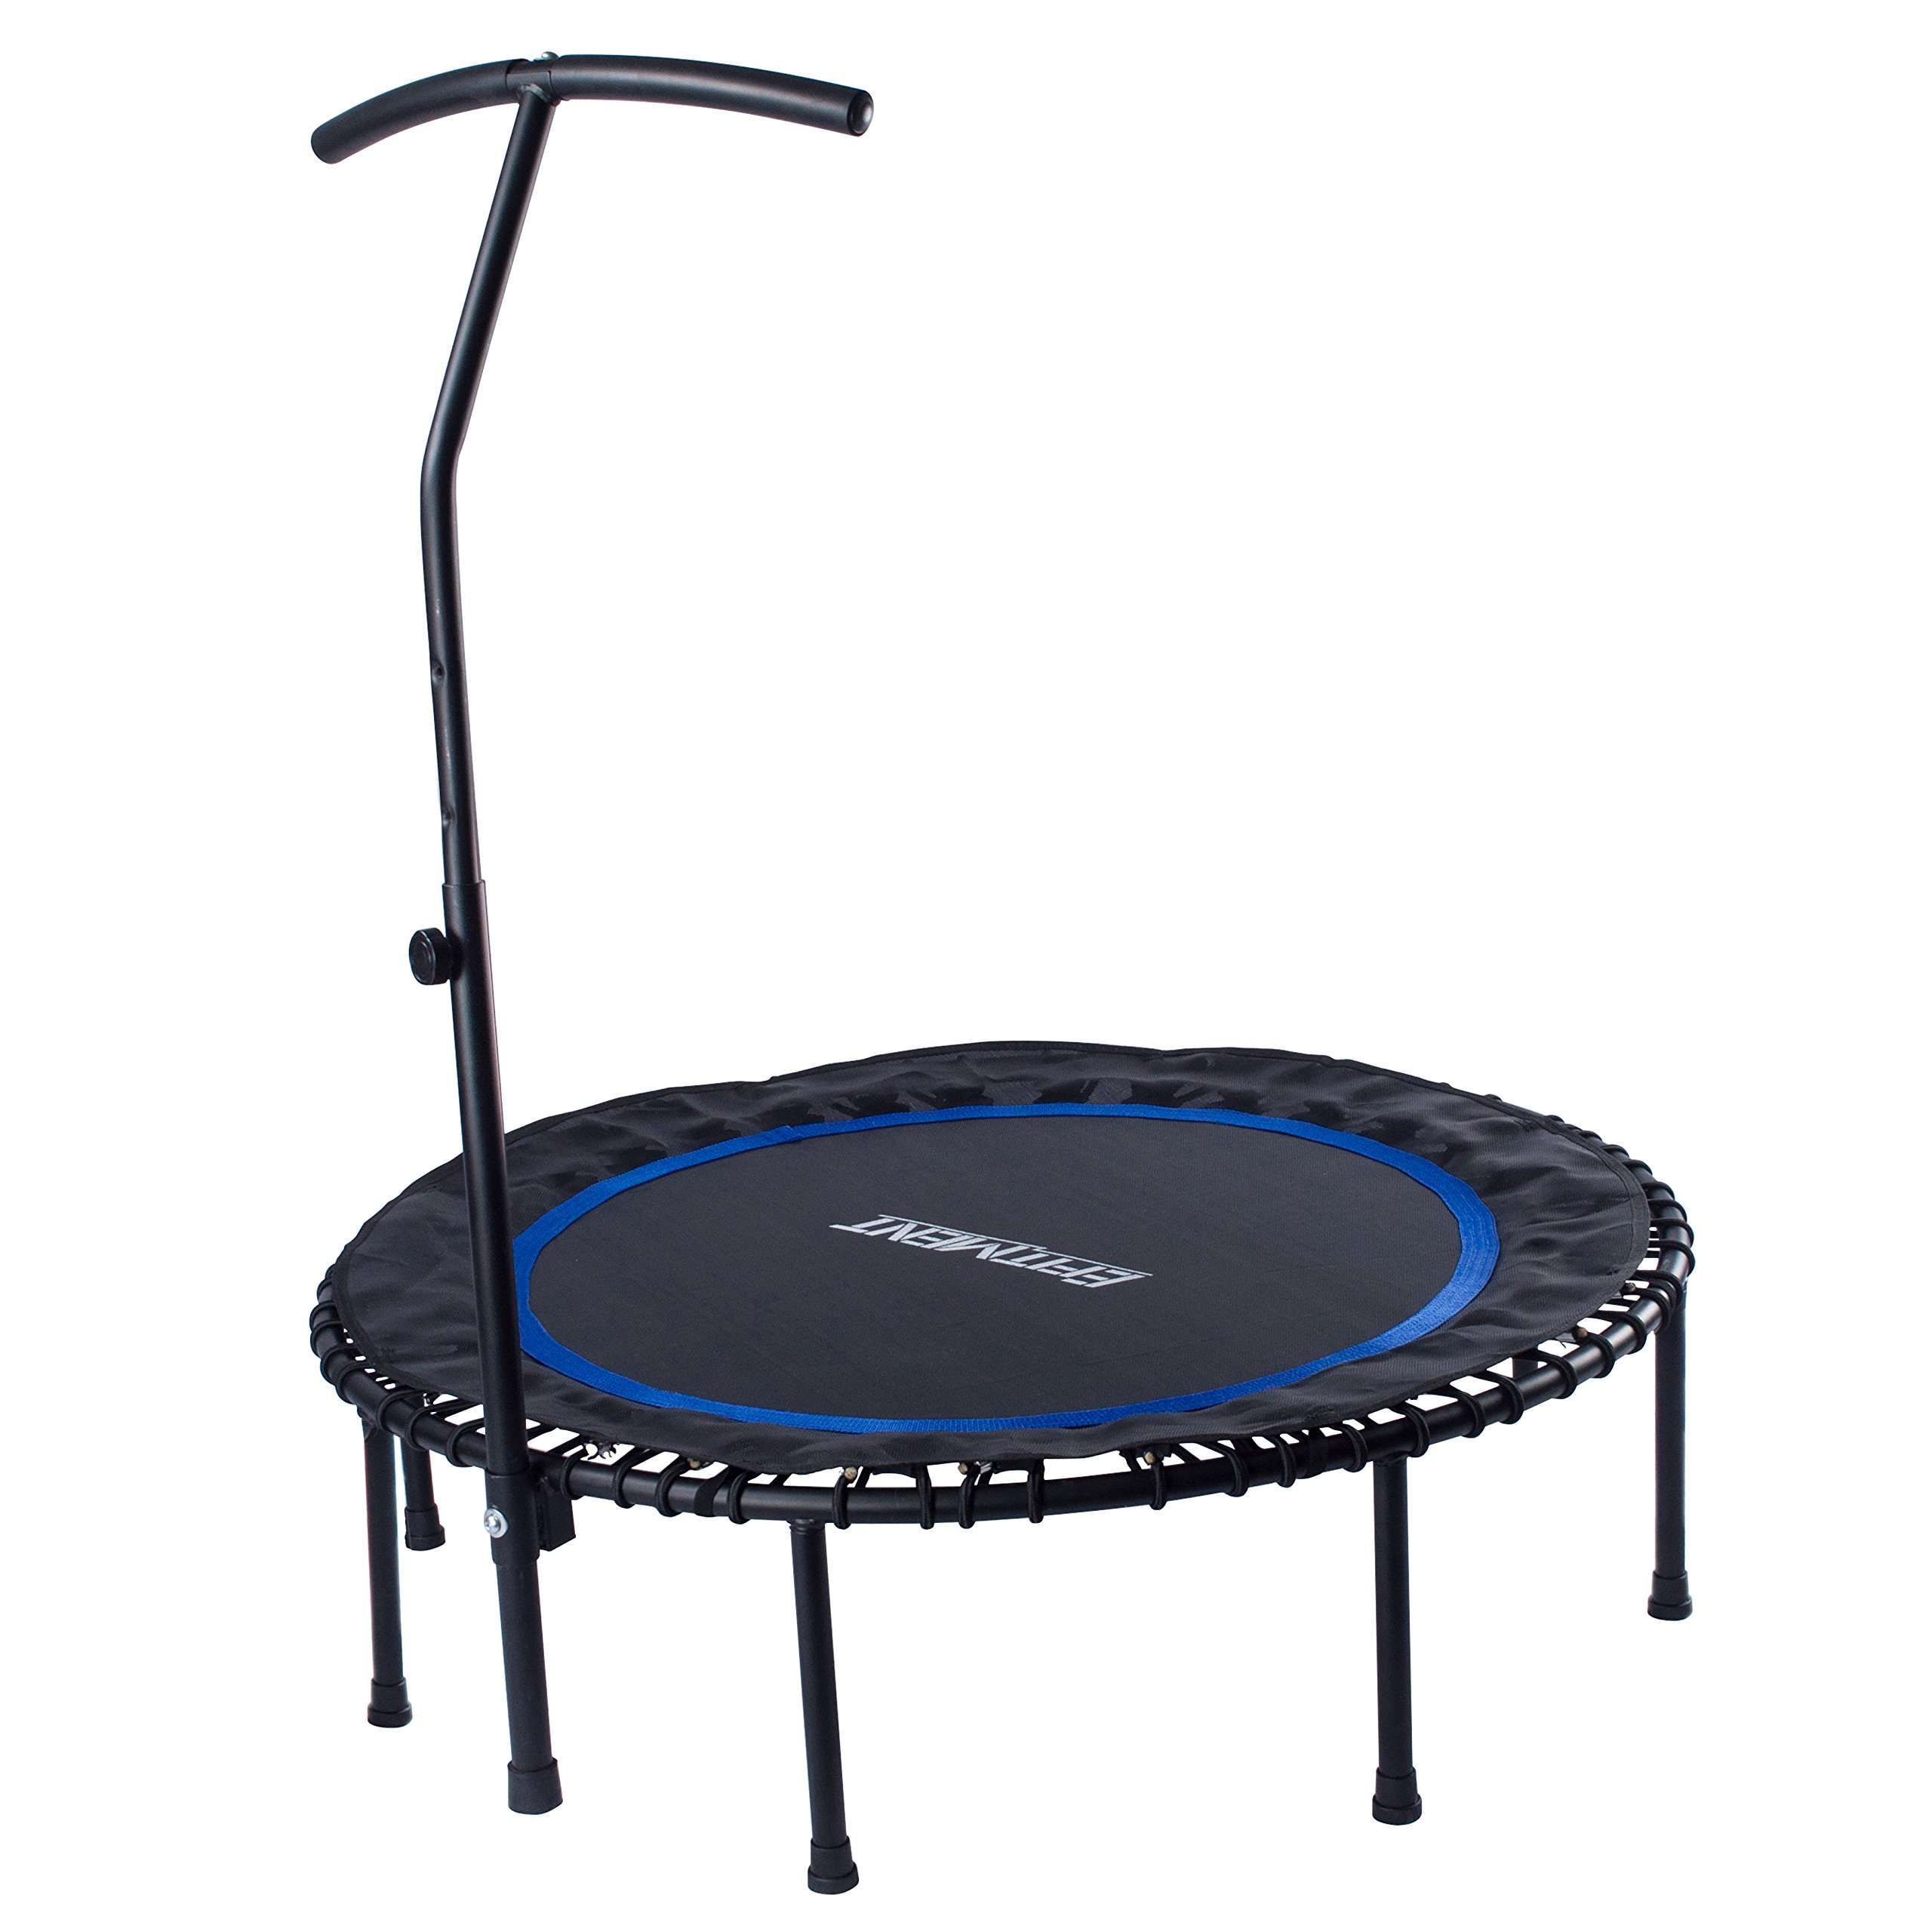 EFITMENT 45-in Fitness Trampoline Rebounder for Exercise with Handlebar and Long Lasting Premium Bungees - A024